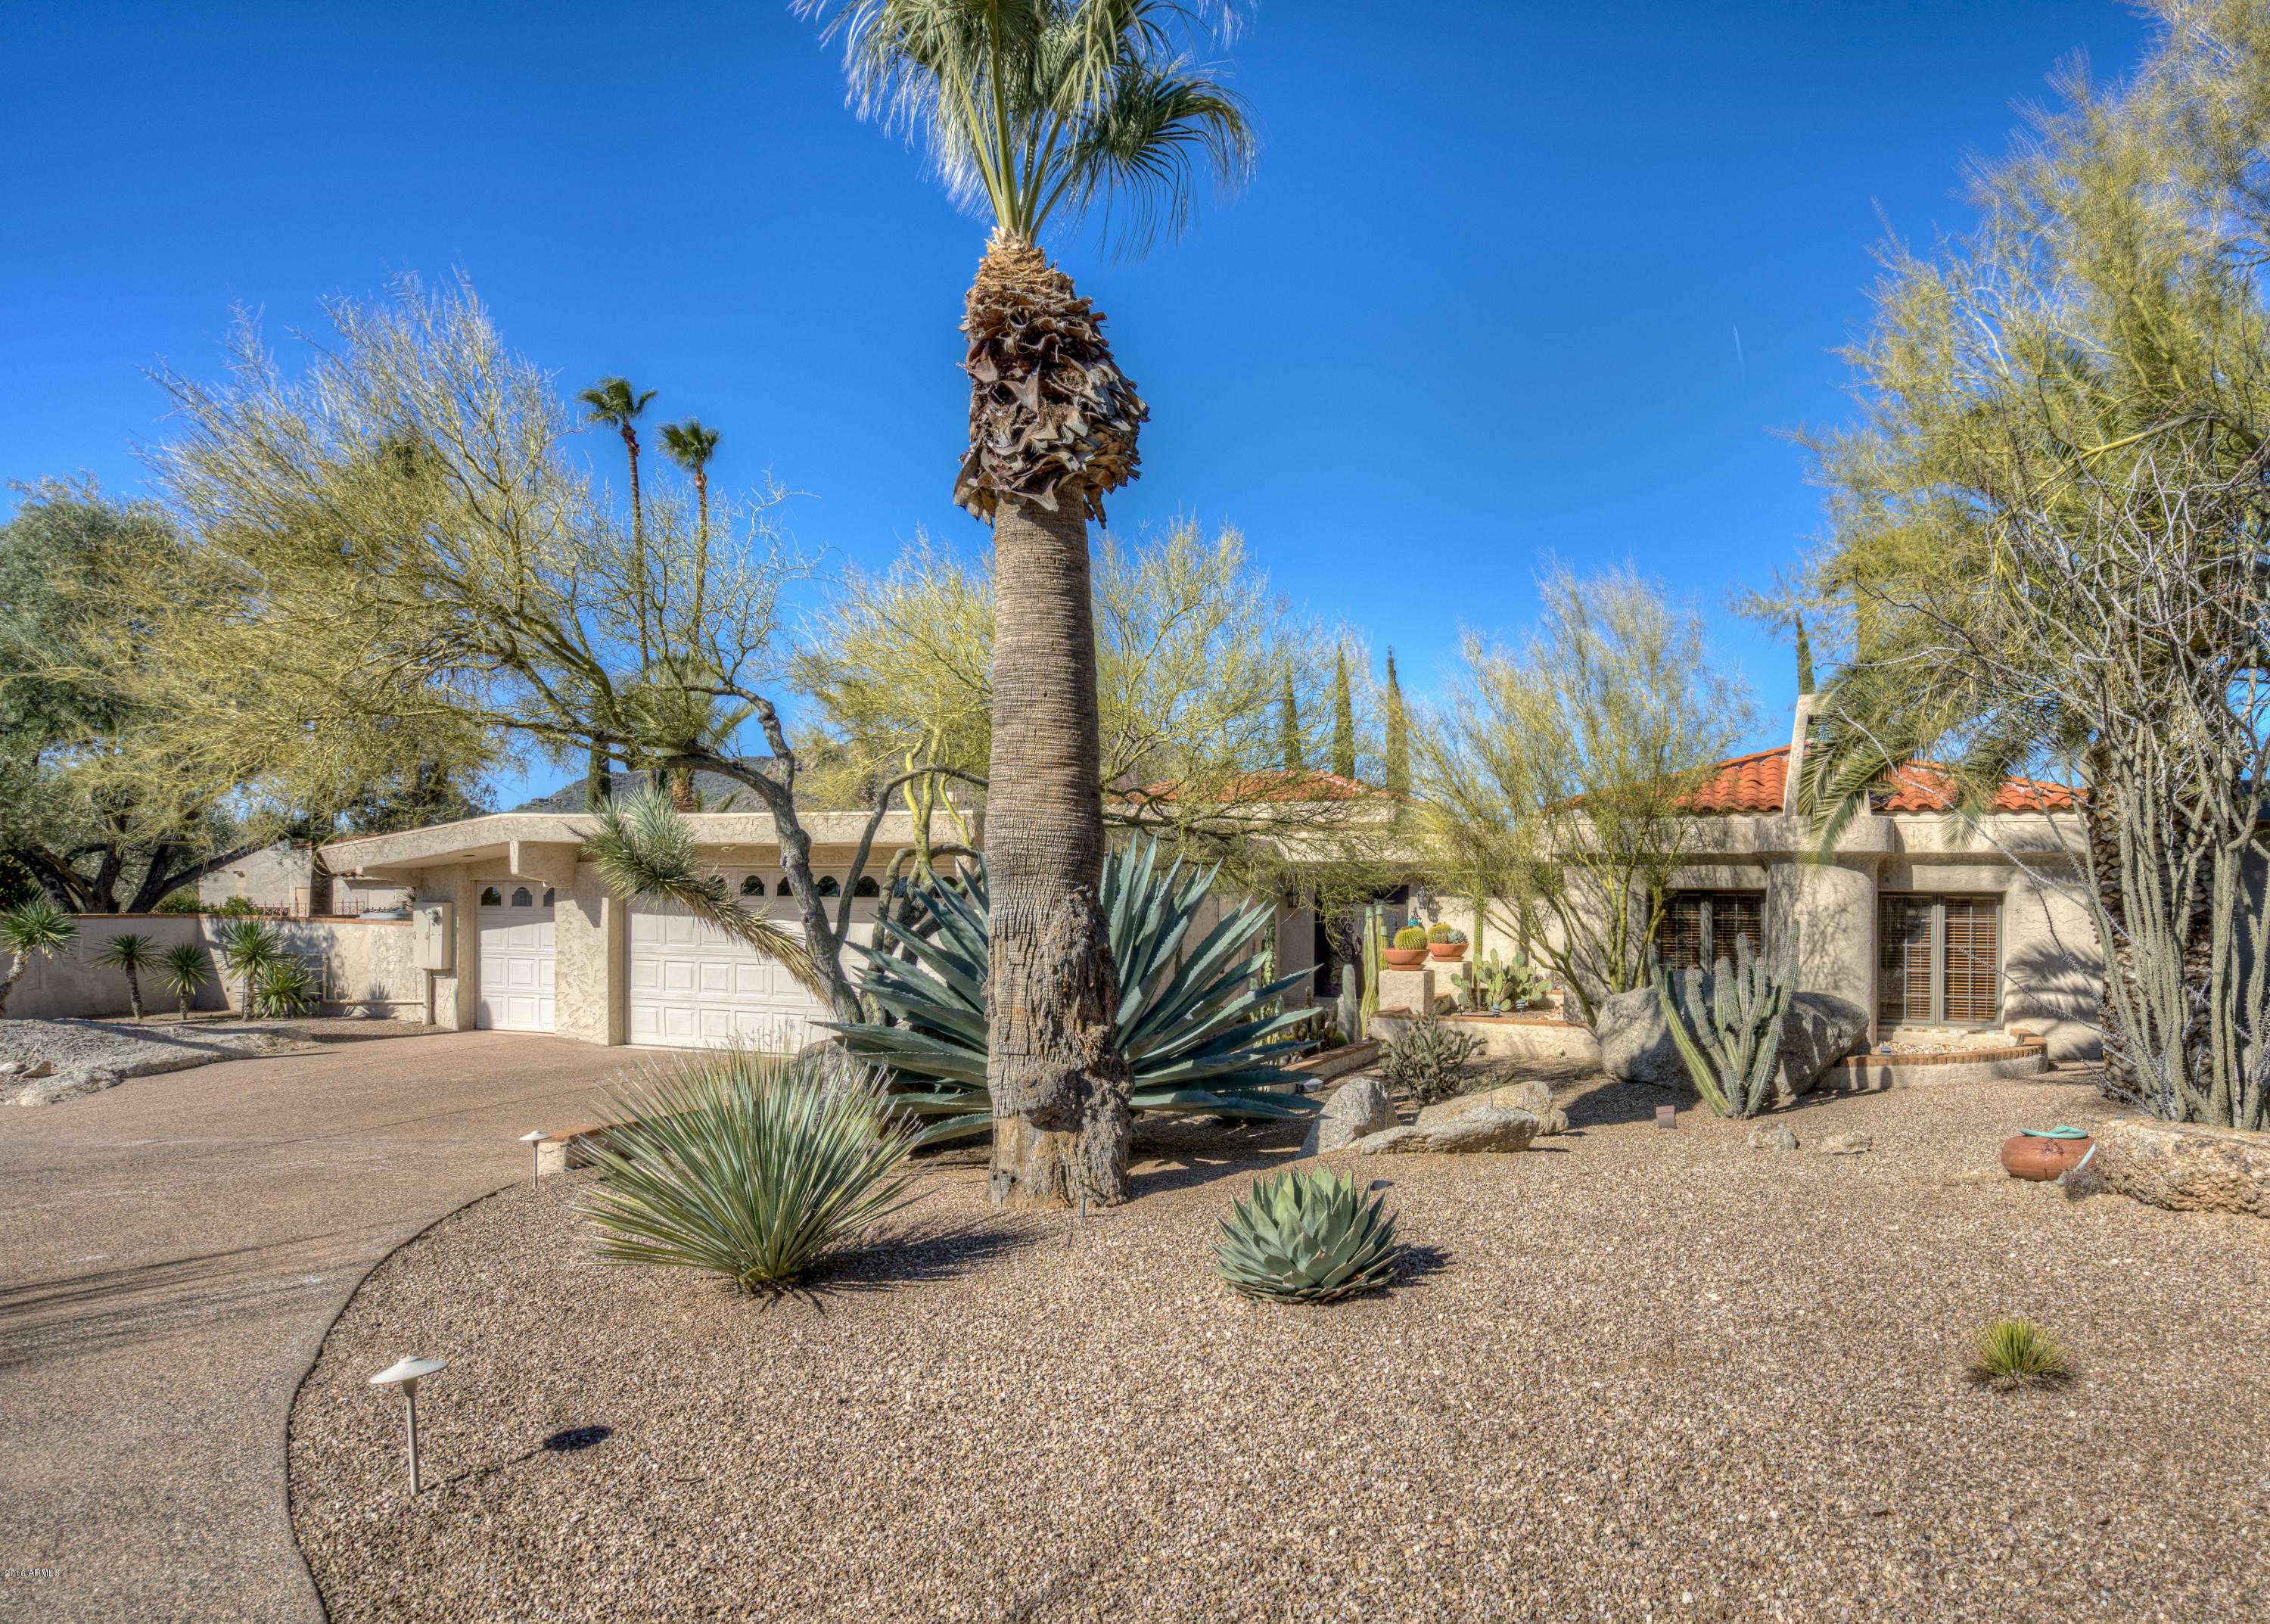 $1,299,000 - 4Br/4Ba - Home for Sale in Boulders Carefree 4 Phase 1, Carefree